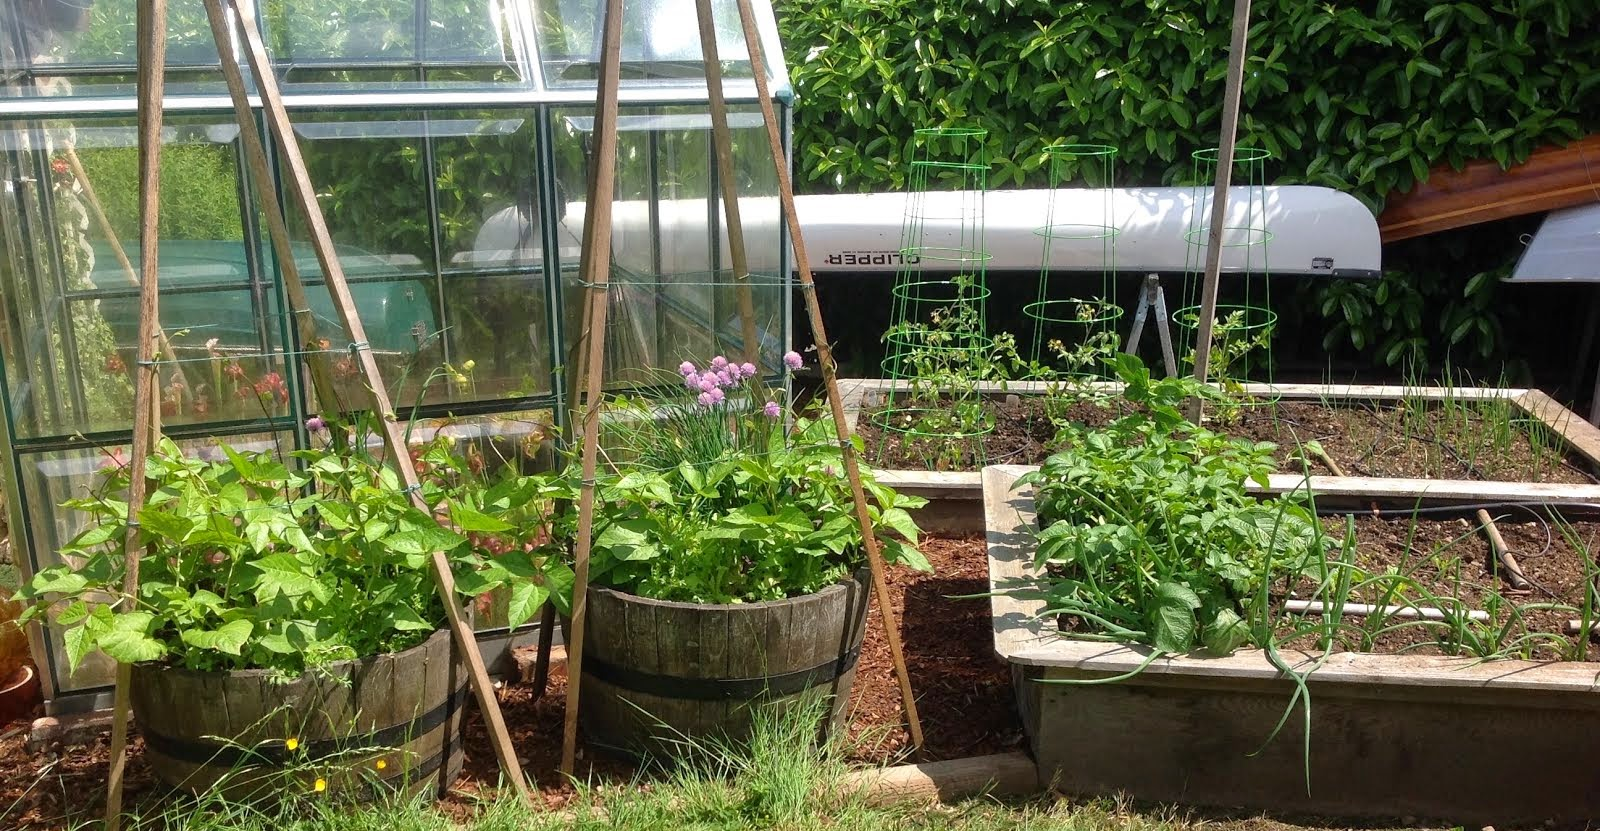 When I Moved To The Drake St. House In Town Four Years Ago, The Small  Backyard Was Dominated By A Large, Unkempt But Productive Vegetable Garden  ... The ...